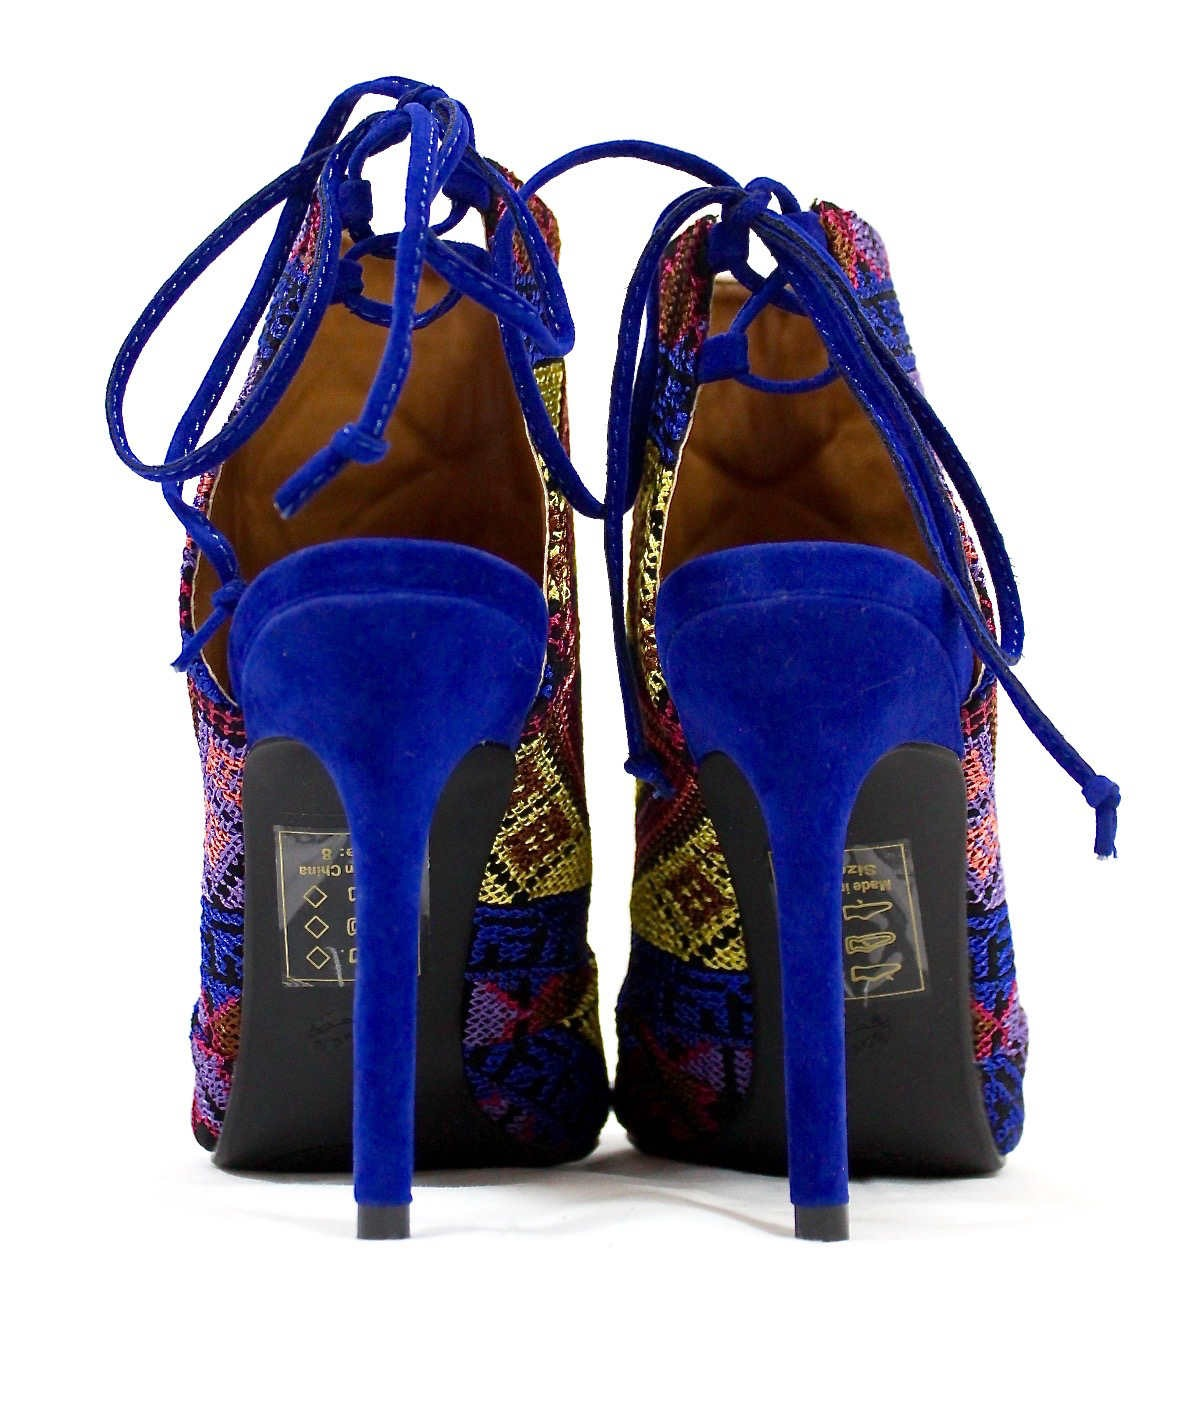 Shoe Republic Calista embroidered Stiletto Open Toe High Blue Booties-4750